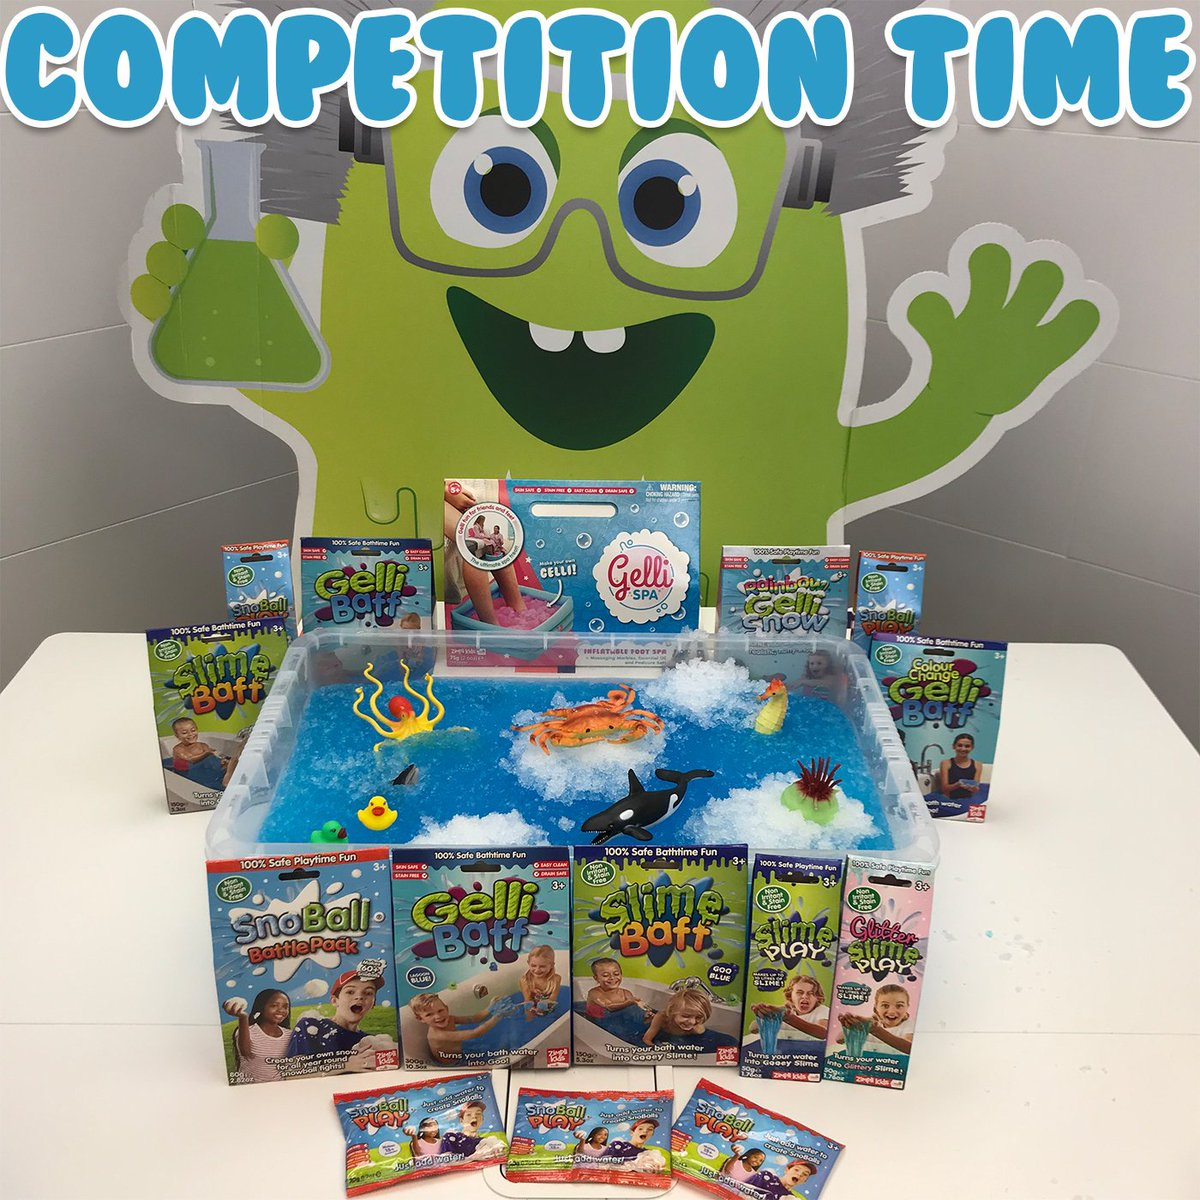 COMPETITION TIME! #Win this snow themed mega bundle! To enter, #follow us, like and tag 3 friends! #competition #giveaway #share #repost #zimplikids #gellibaff #slimebaff #zimplikids #sensoryplay #messyplay #finemotorskills #snoballbattlepack #gellisnow<br>http://pic.twitter.com/5EprtdBuj6